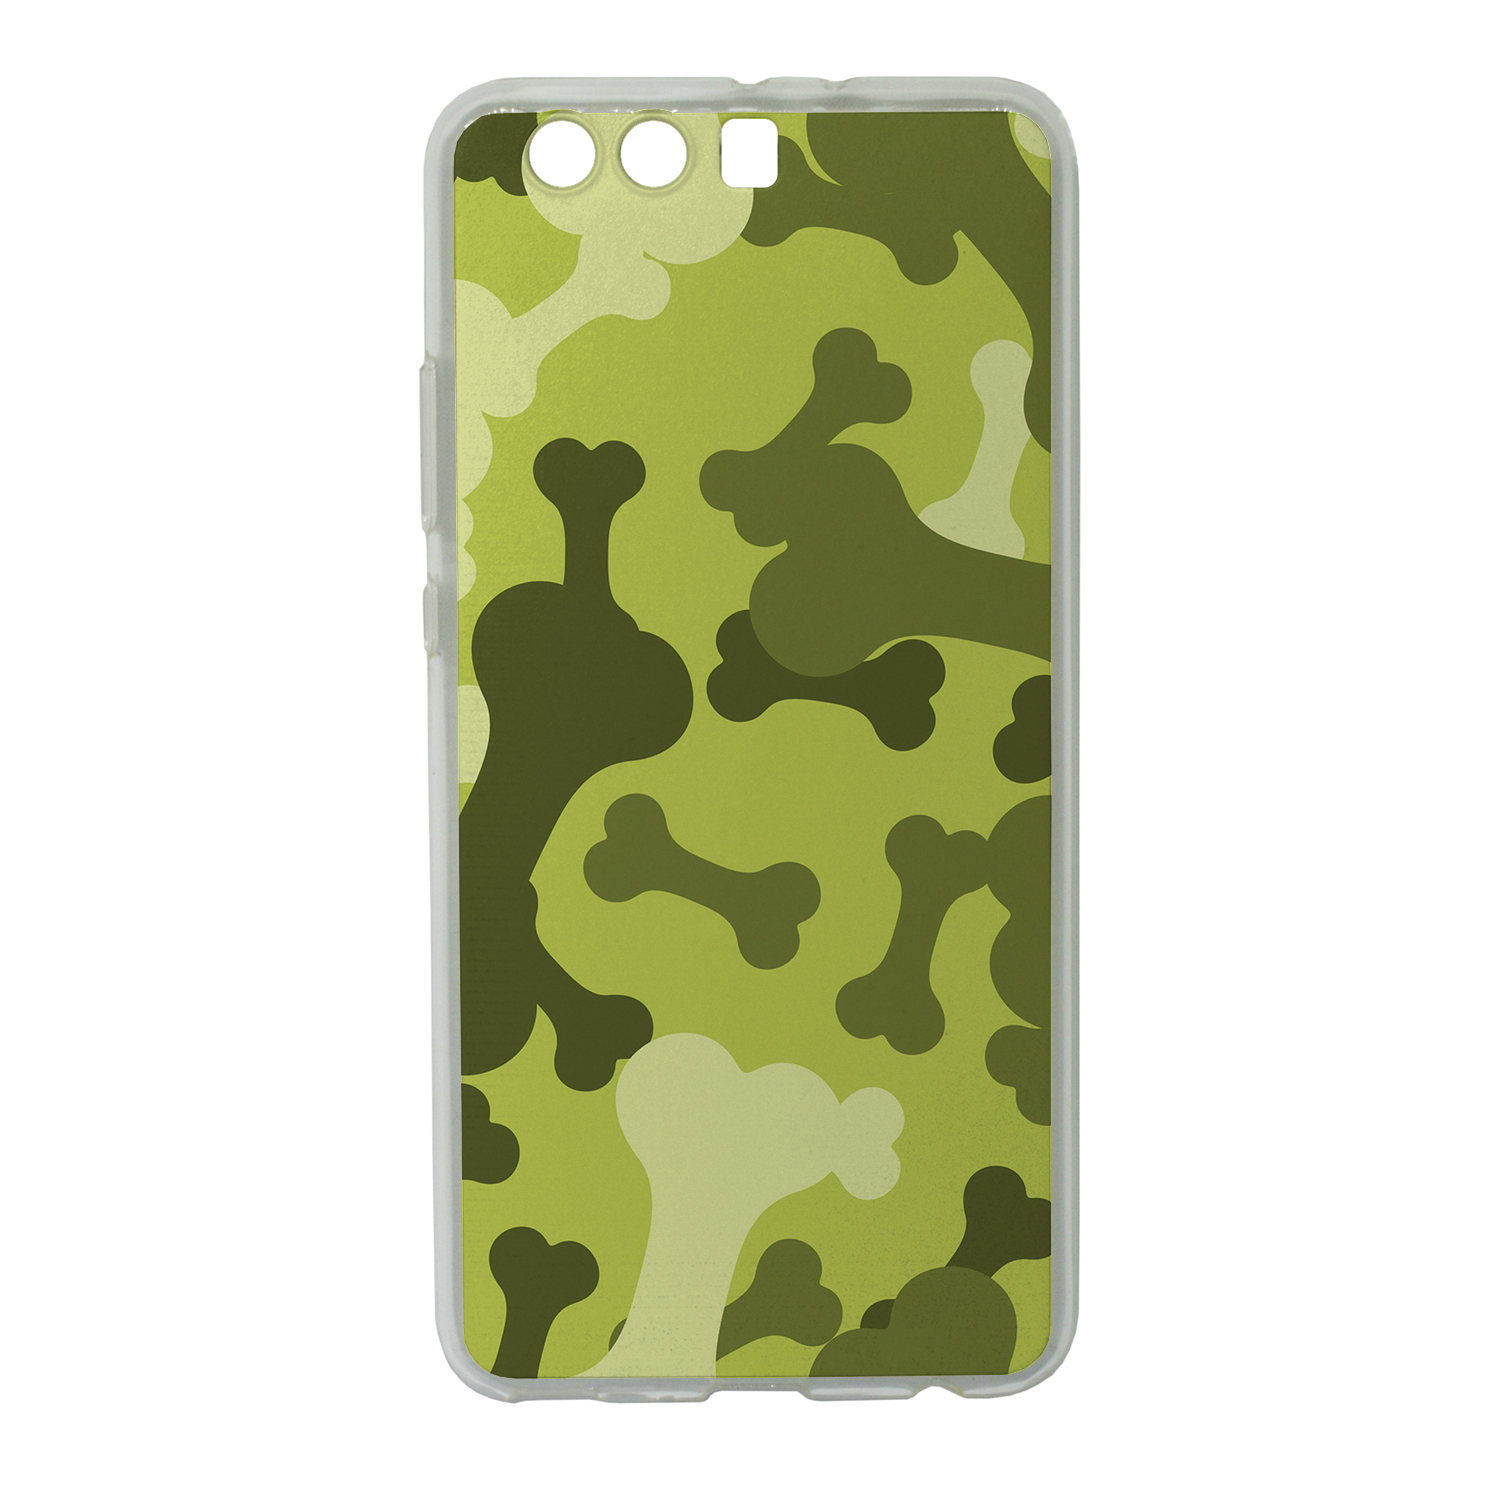 CAMOUFLAGE-CHIEN-OS-TPU-Coque-Pour-Telephone-portable-S92